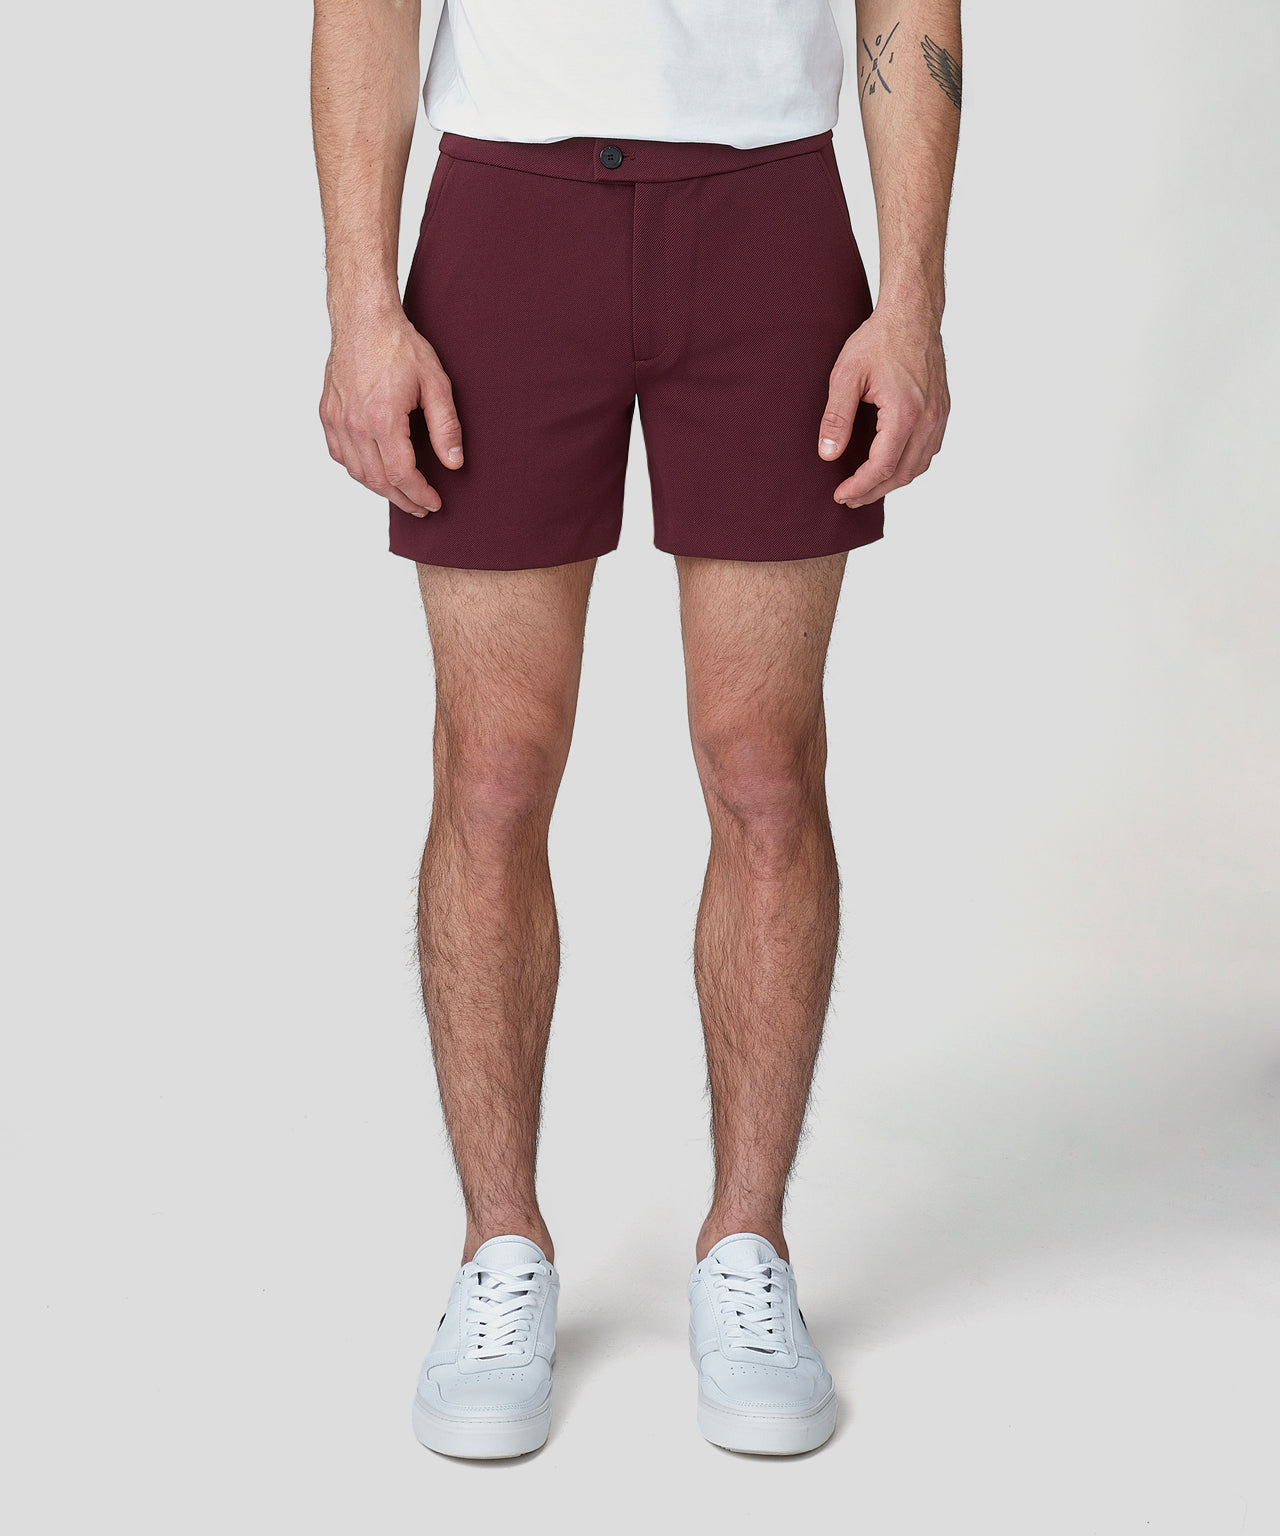 Tennis Shorts - burgundy red